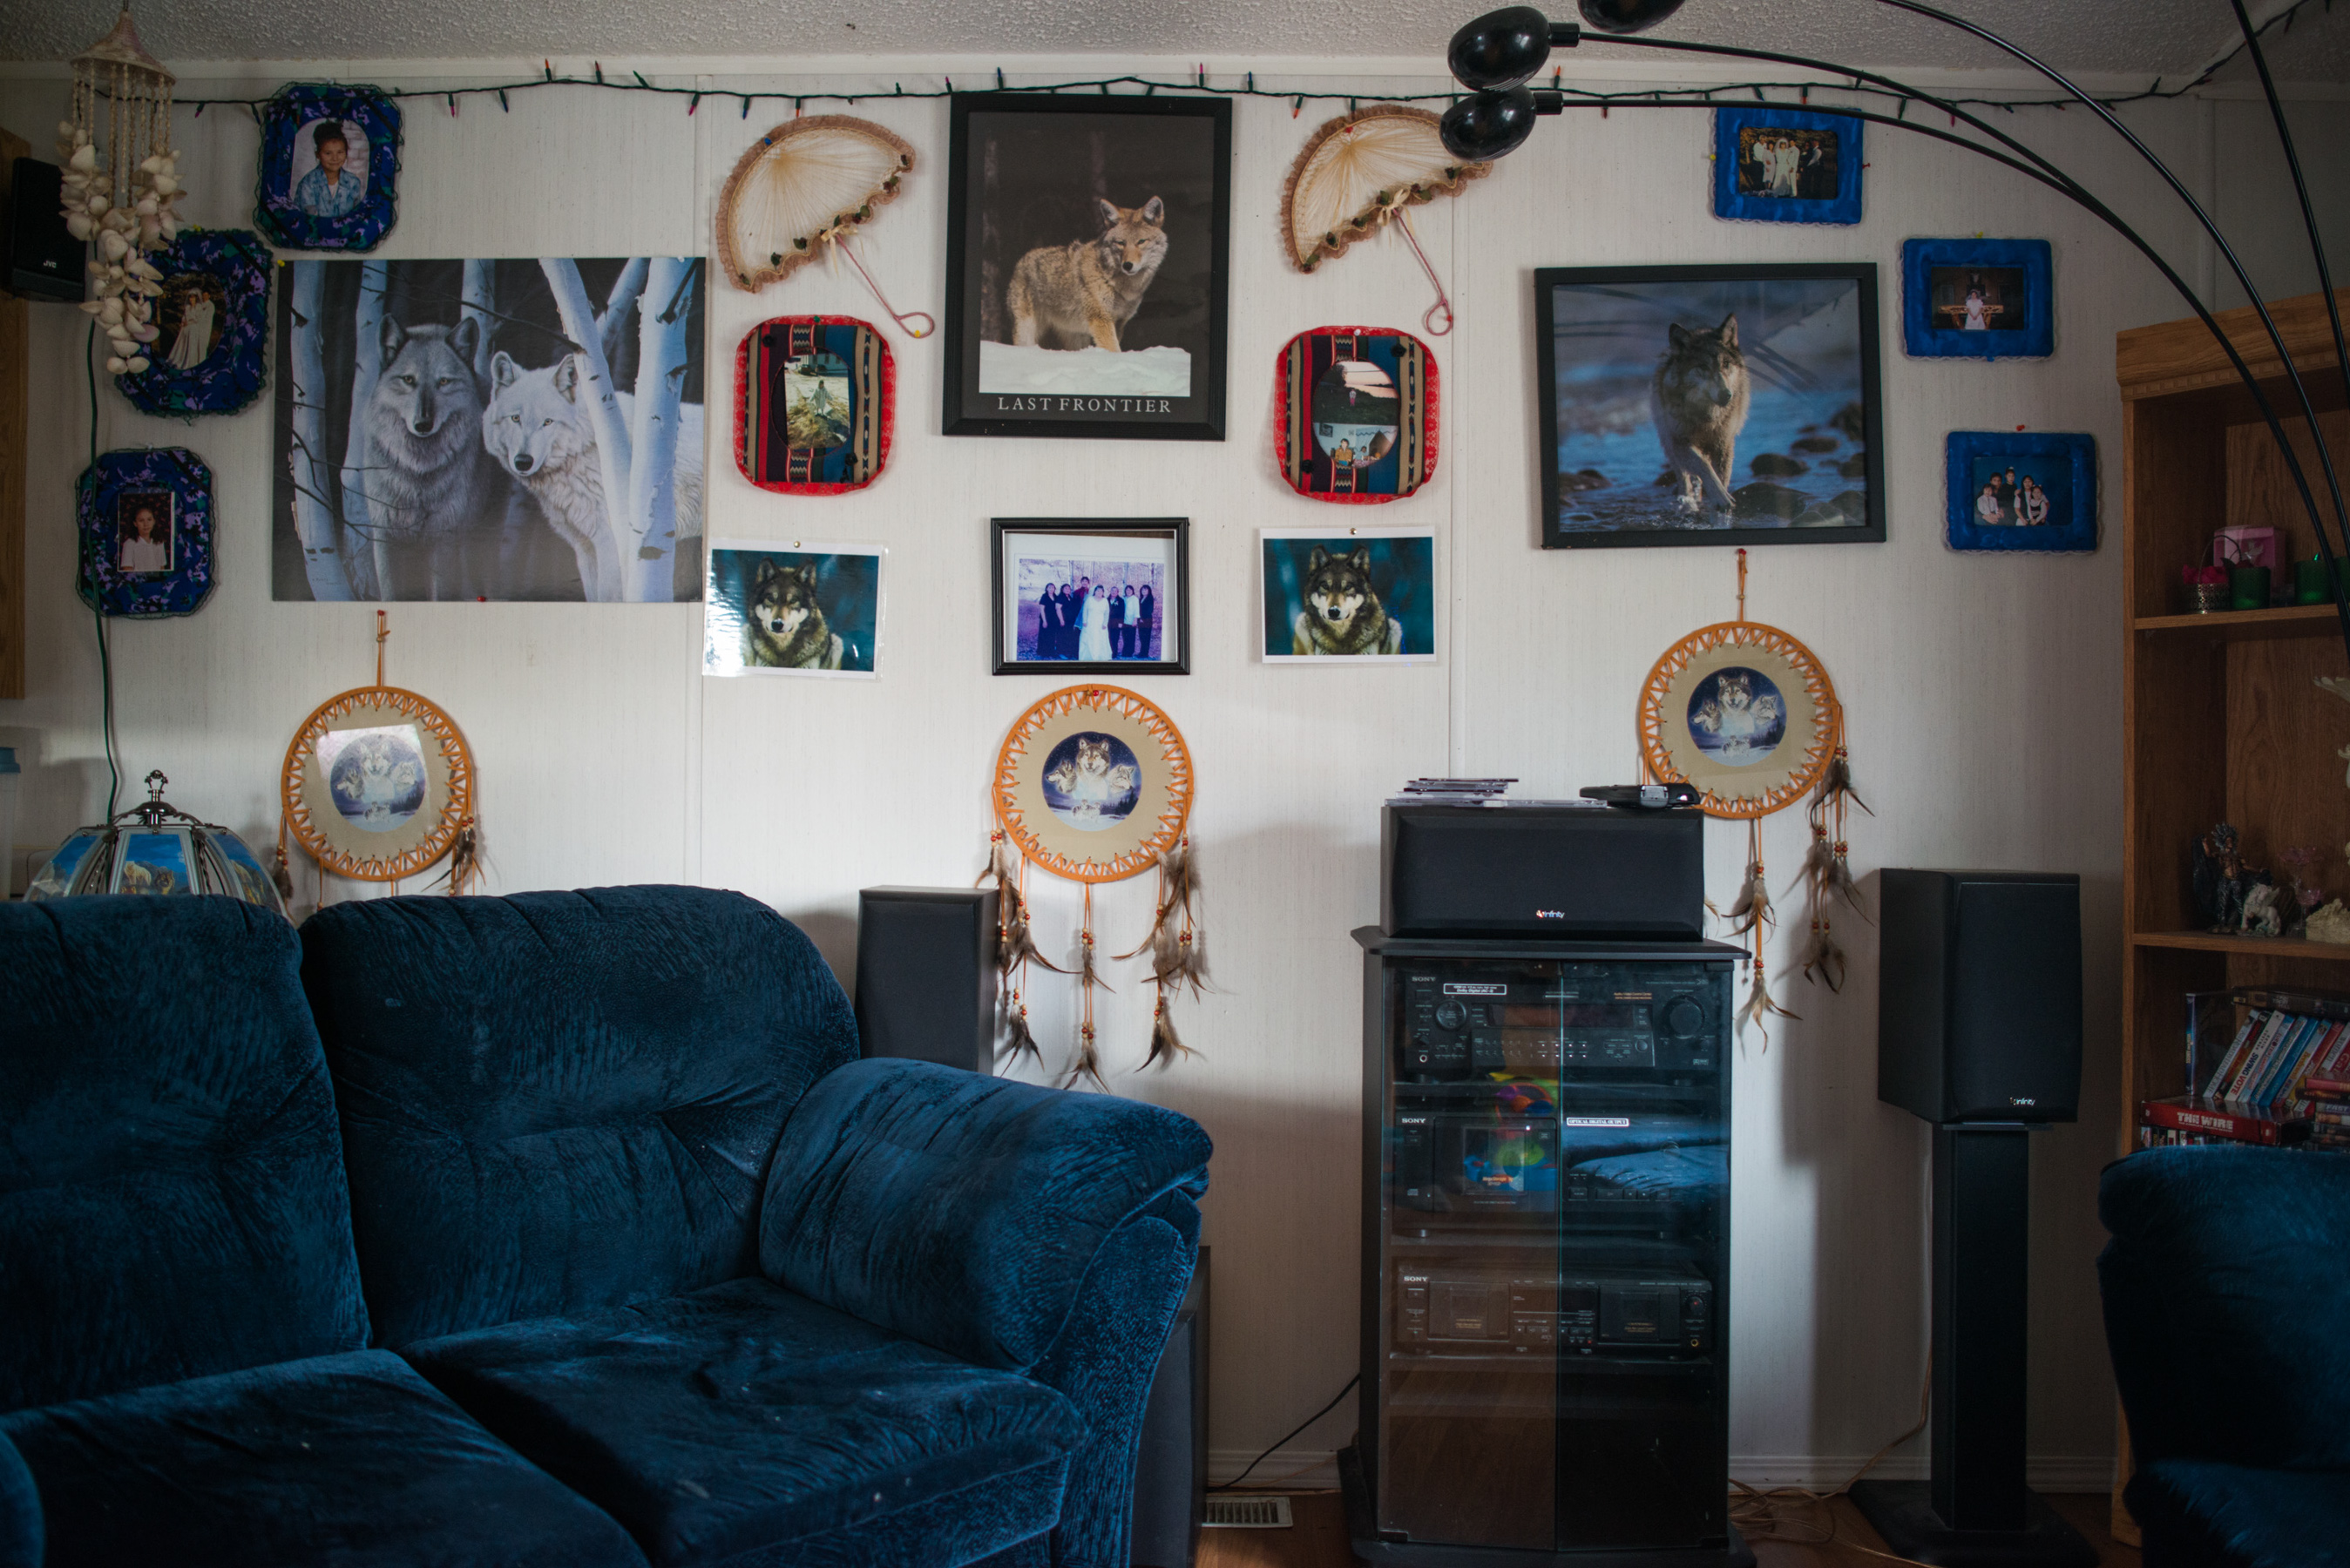 A typical living room in Fort Chipewyan shows a dichotomy between modern comforts and traditional indigenous culture. Industrial developments in the region have brought some money luxuries to the reserve.